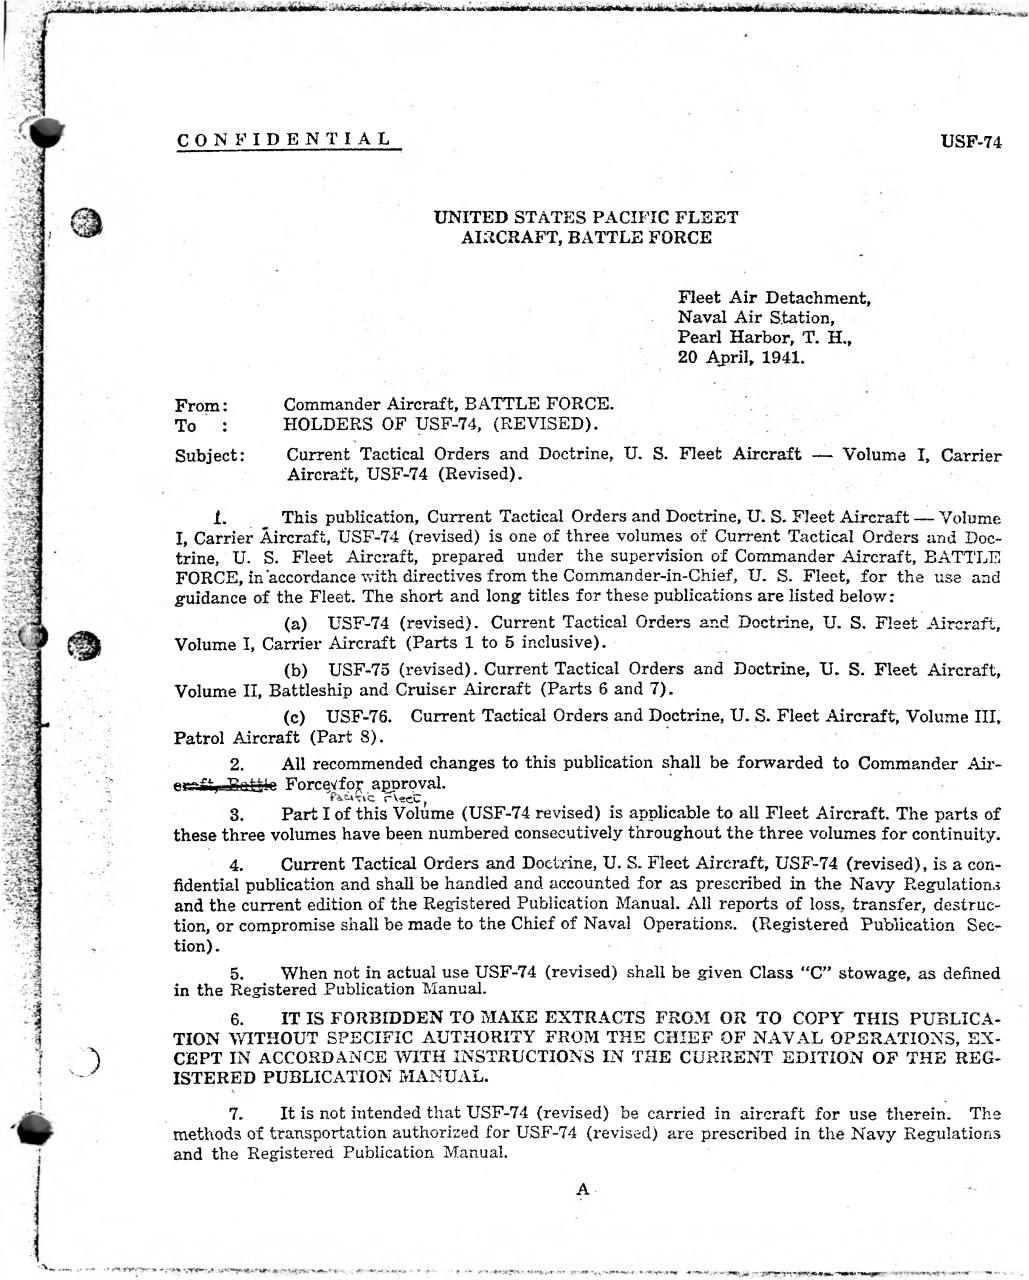 USF-74_Tact&Doct-Acft_V1-CV-Acft_194103.pdf - page 4/213